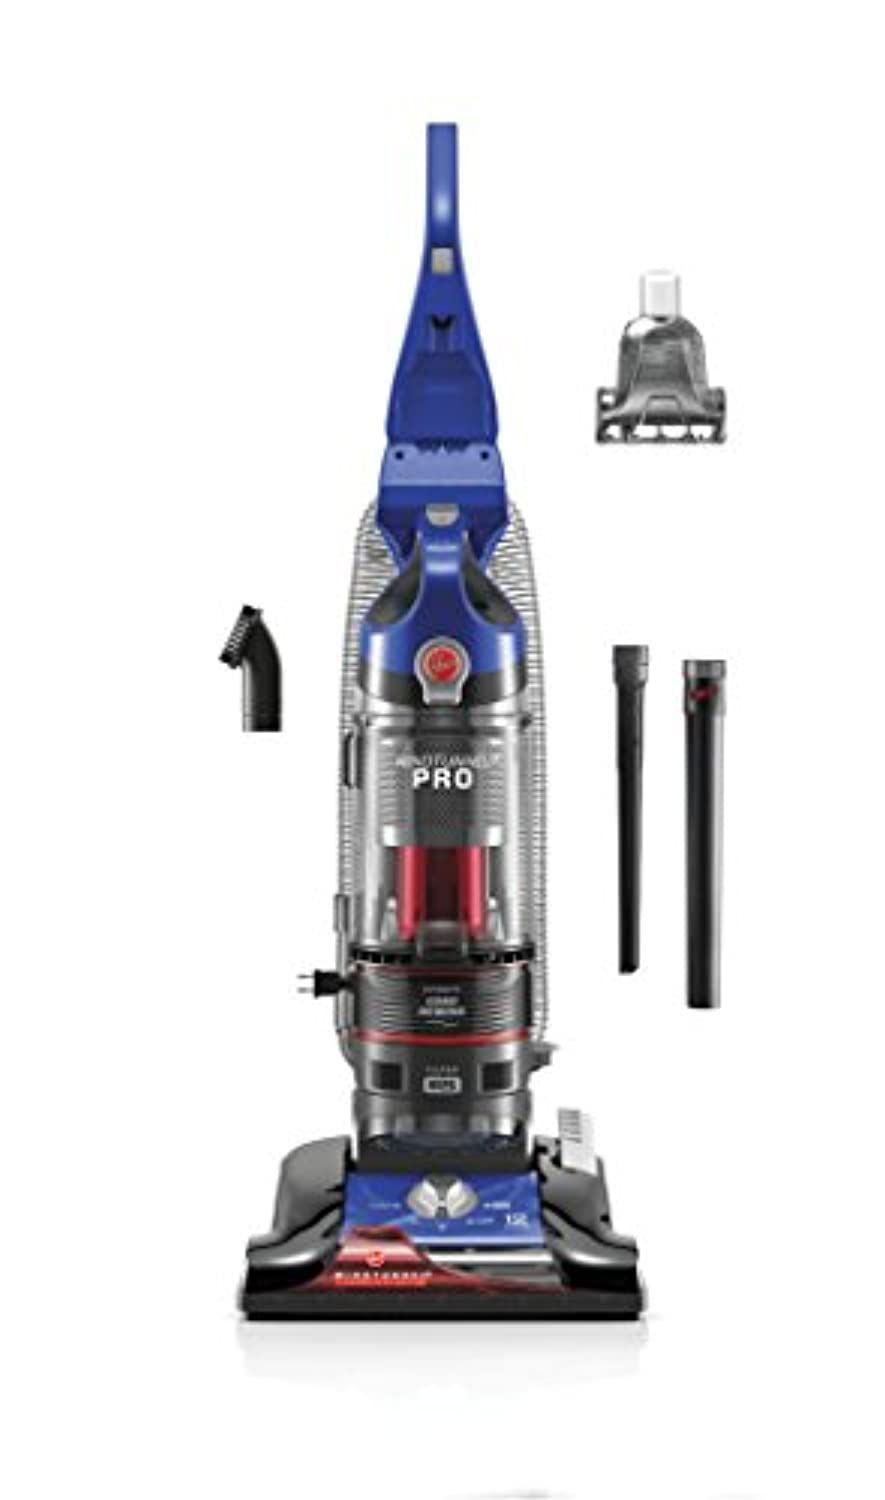 Hoover Windtunnel 3 Pro Bagless Upright Vacuum, UH70905 - Corded by Hoover